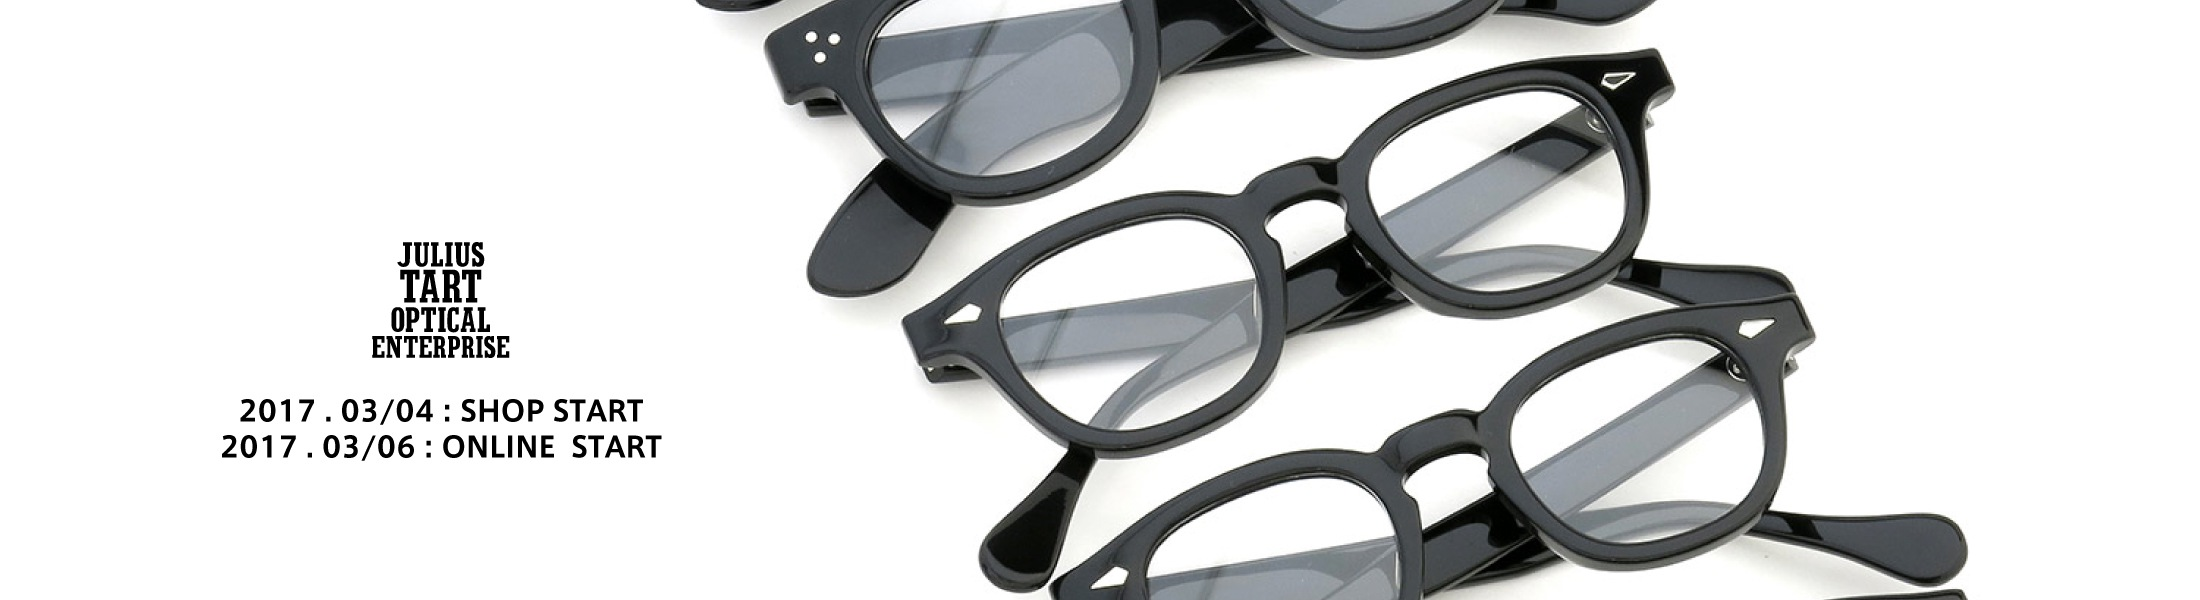 JULIUS TART OPTICAL 販売開始